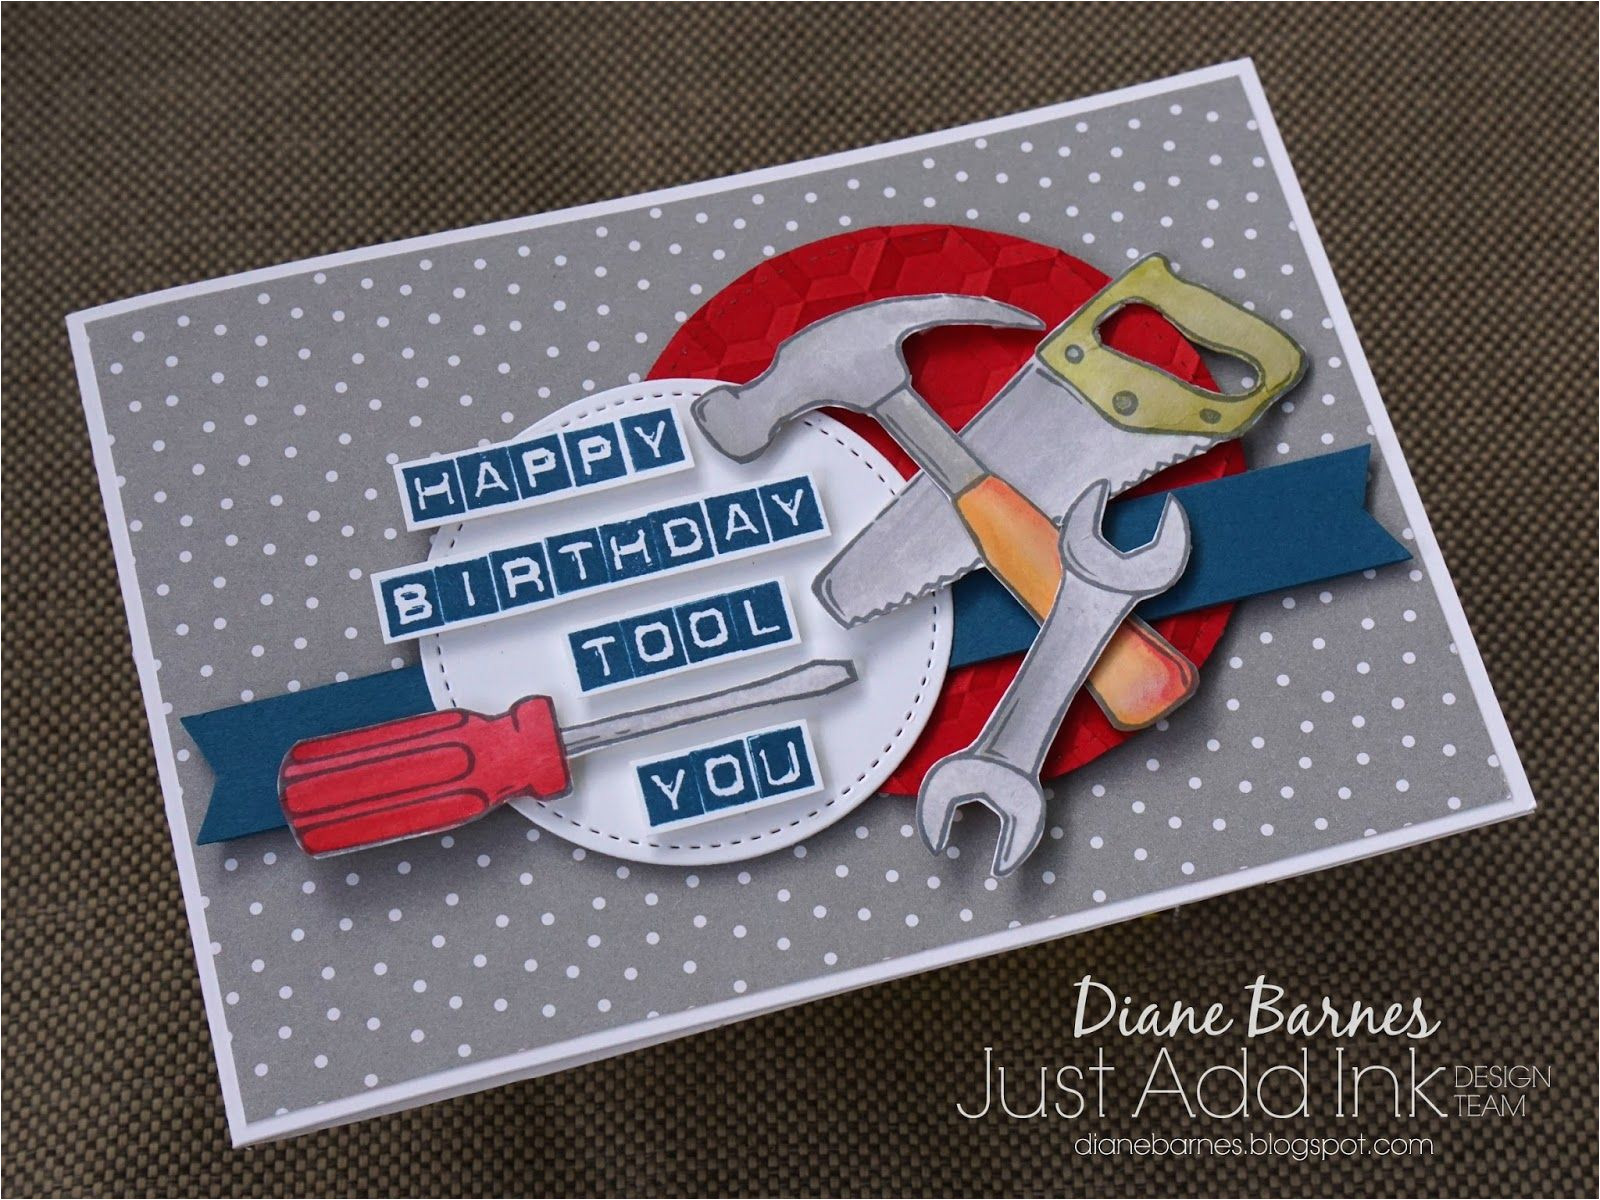 masculine punny tool birthday card using stampin up nailed it labeler alphabet stamp sets carried away sale a bration dsp made for just add ink team